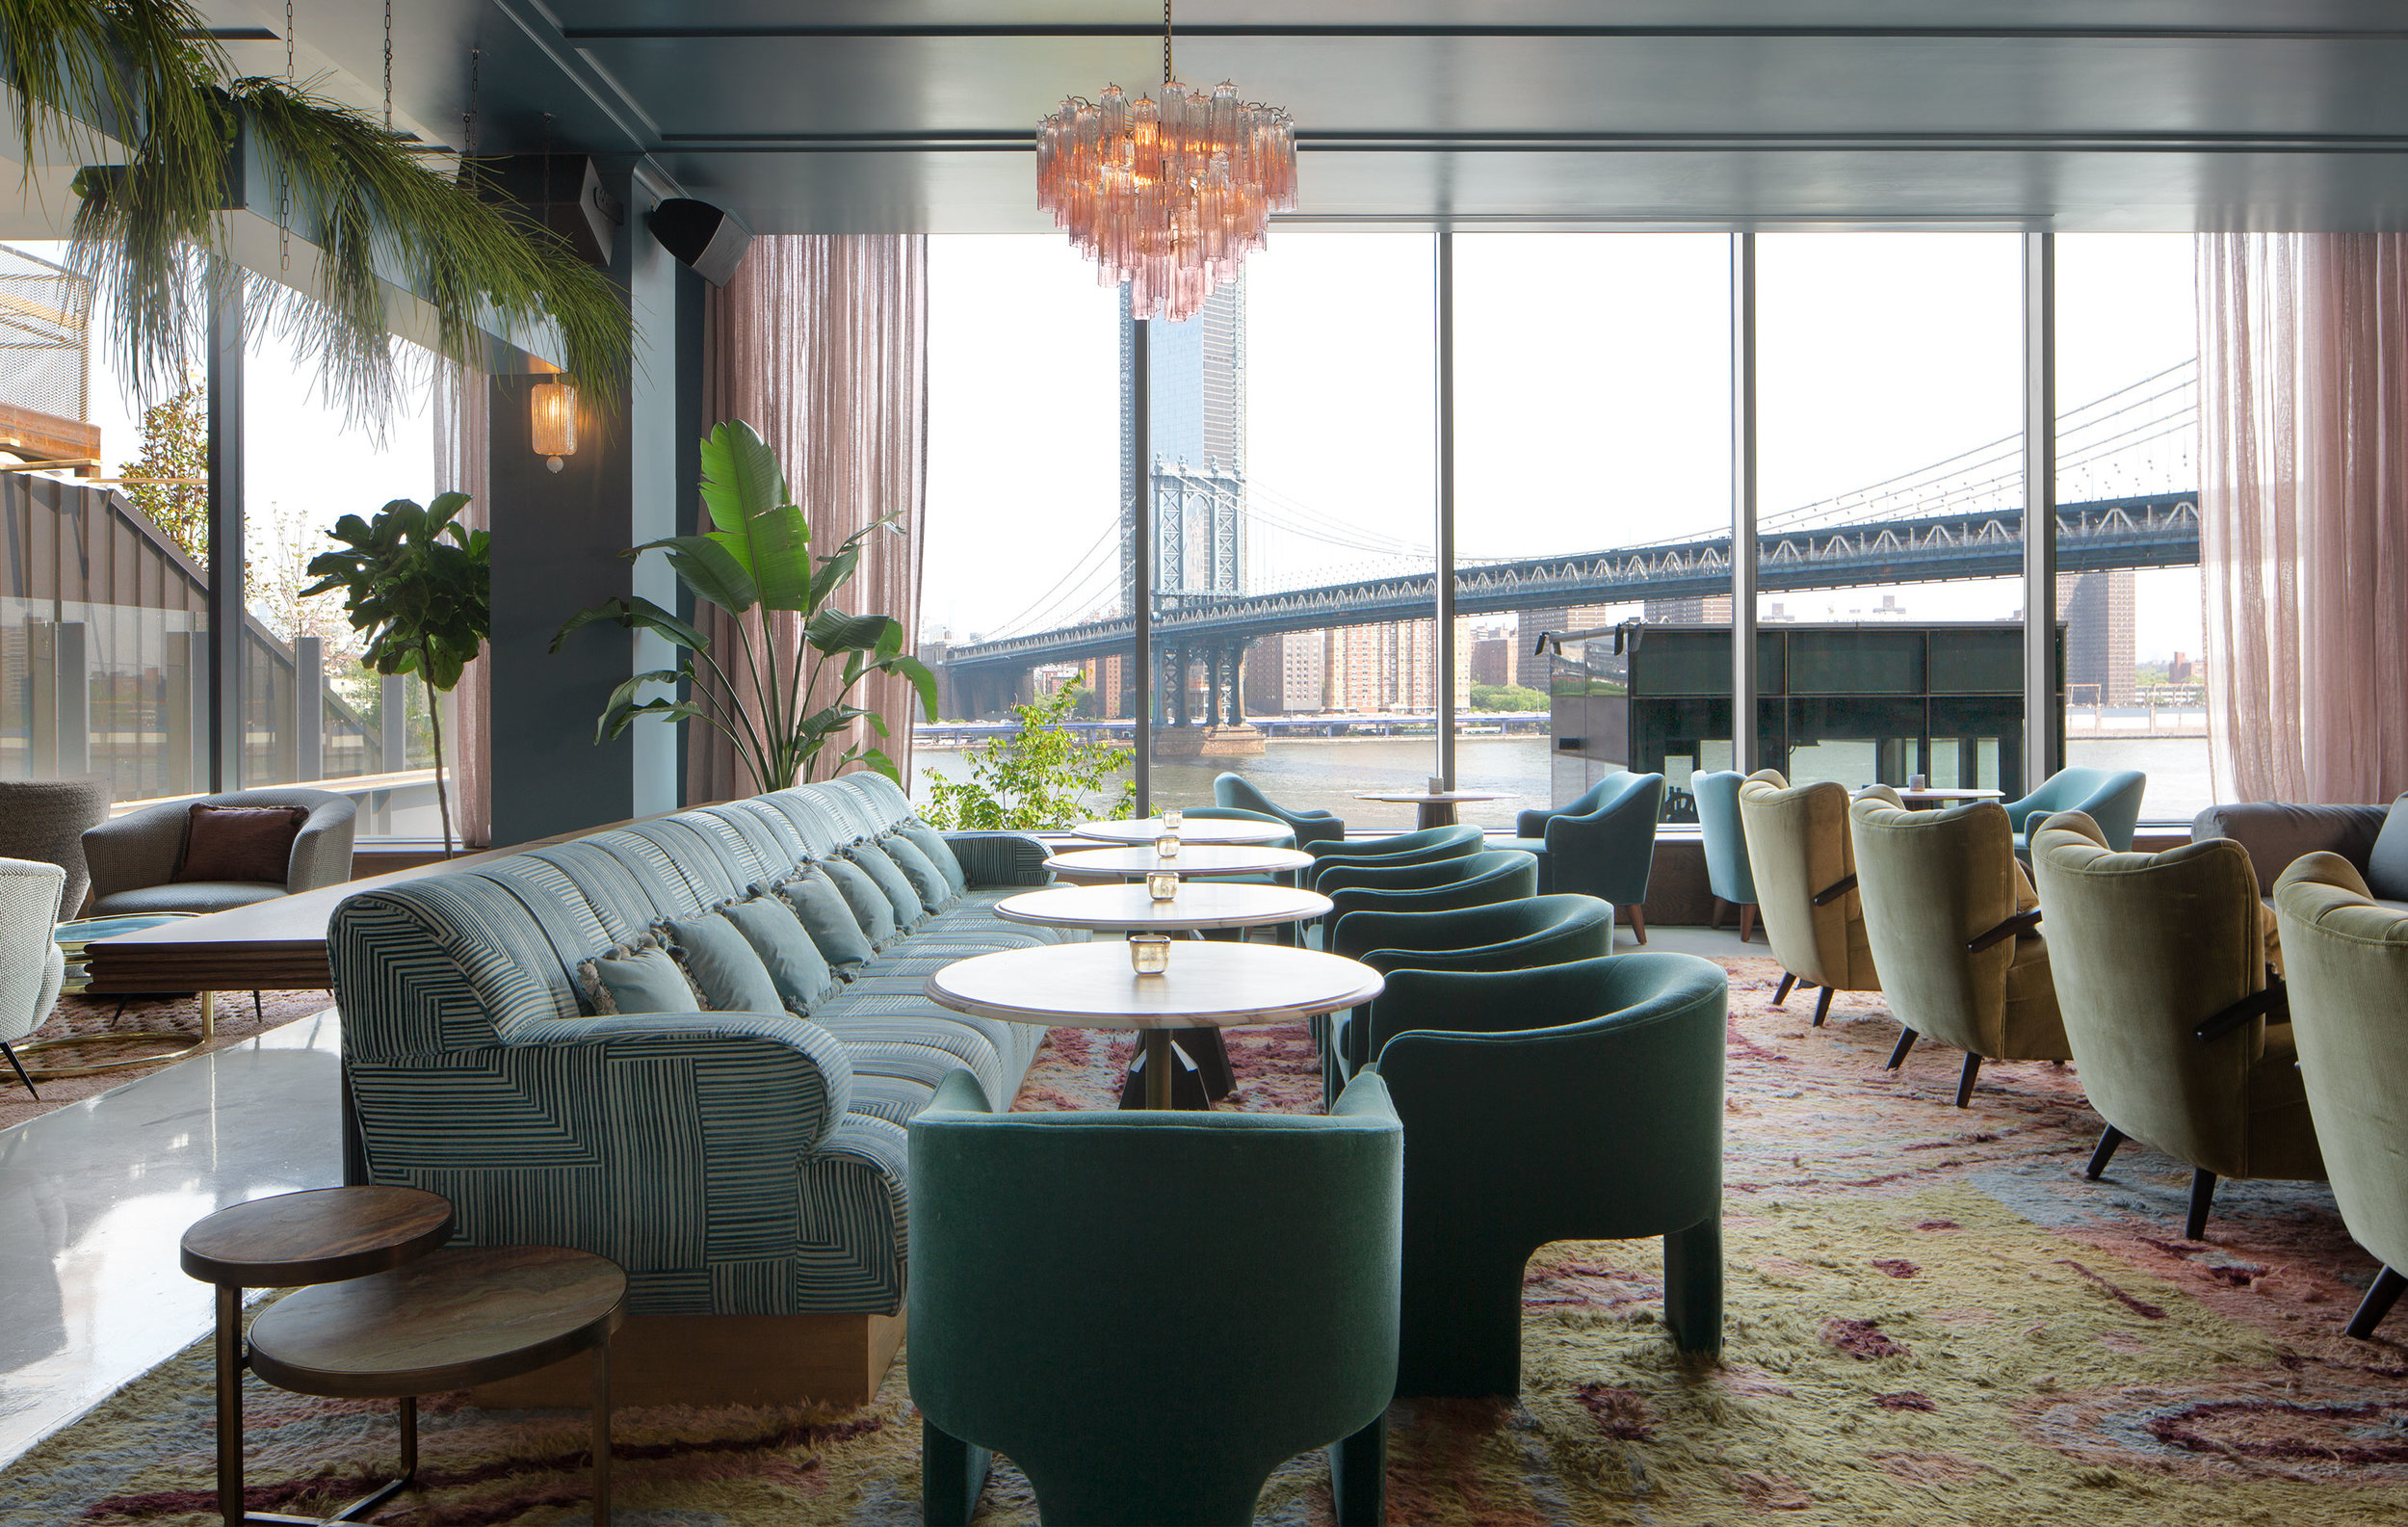 Copyright Soho House DUMBO House 201805 DB LR 006 copy.jpg